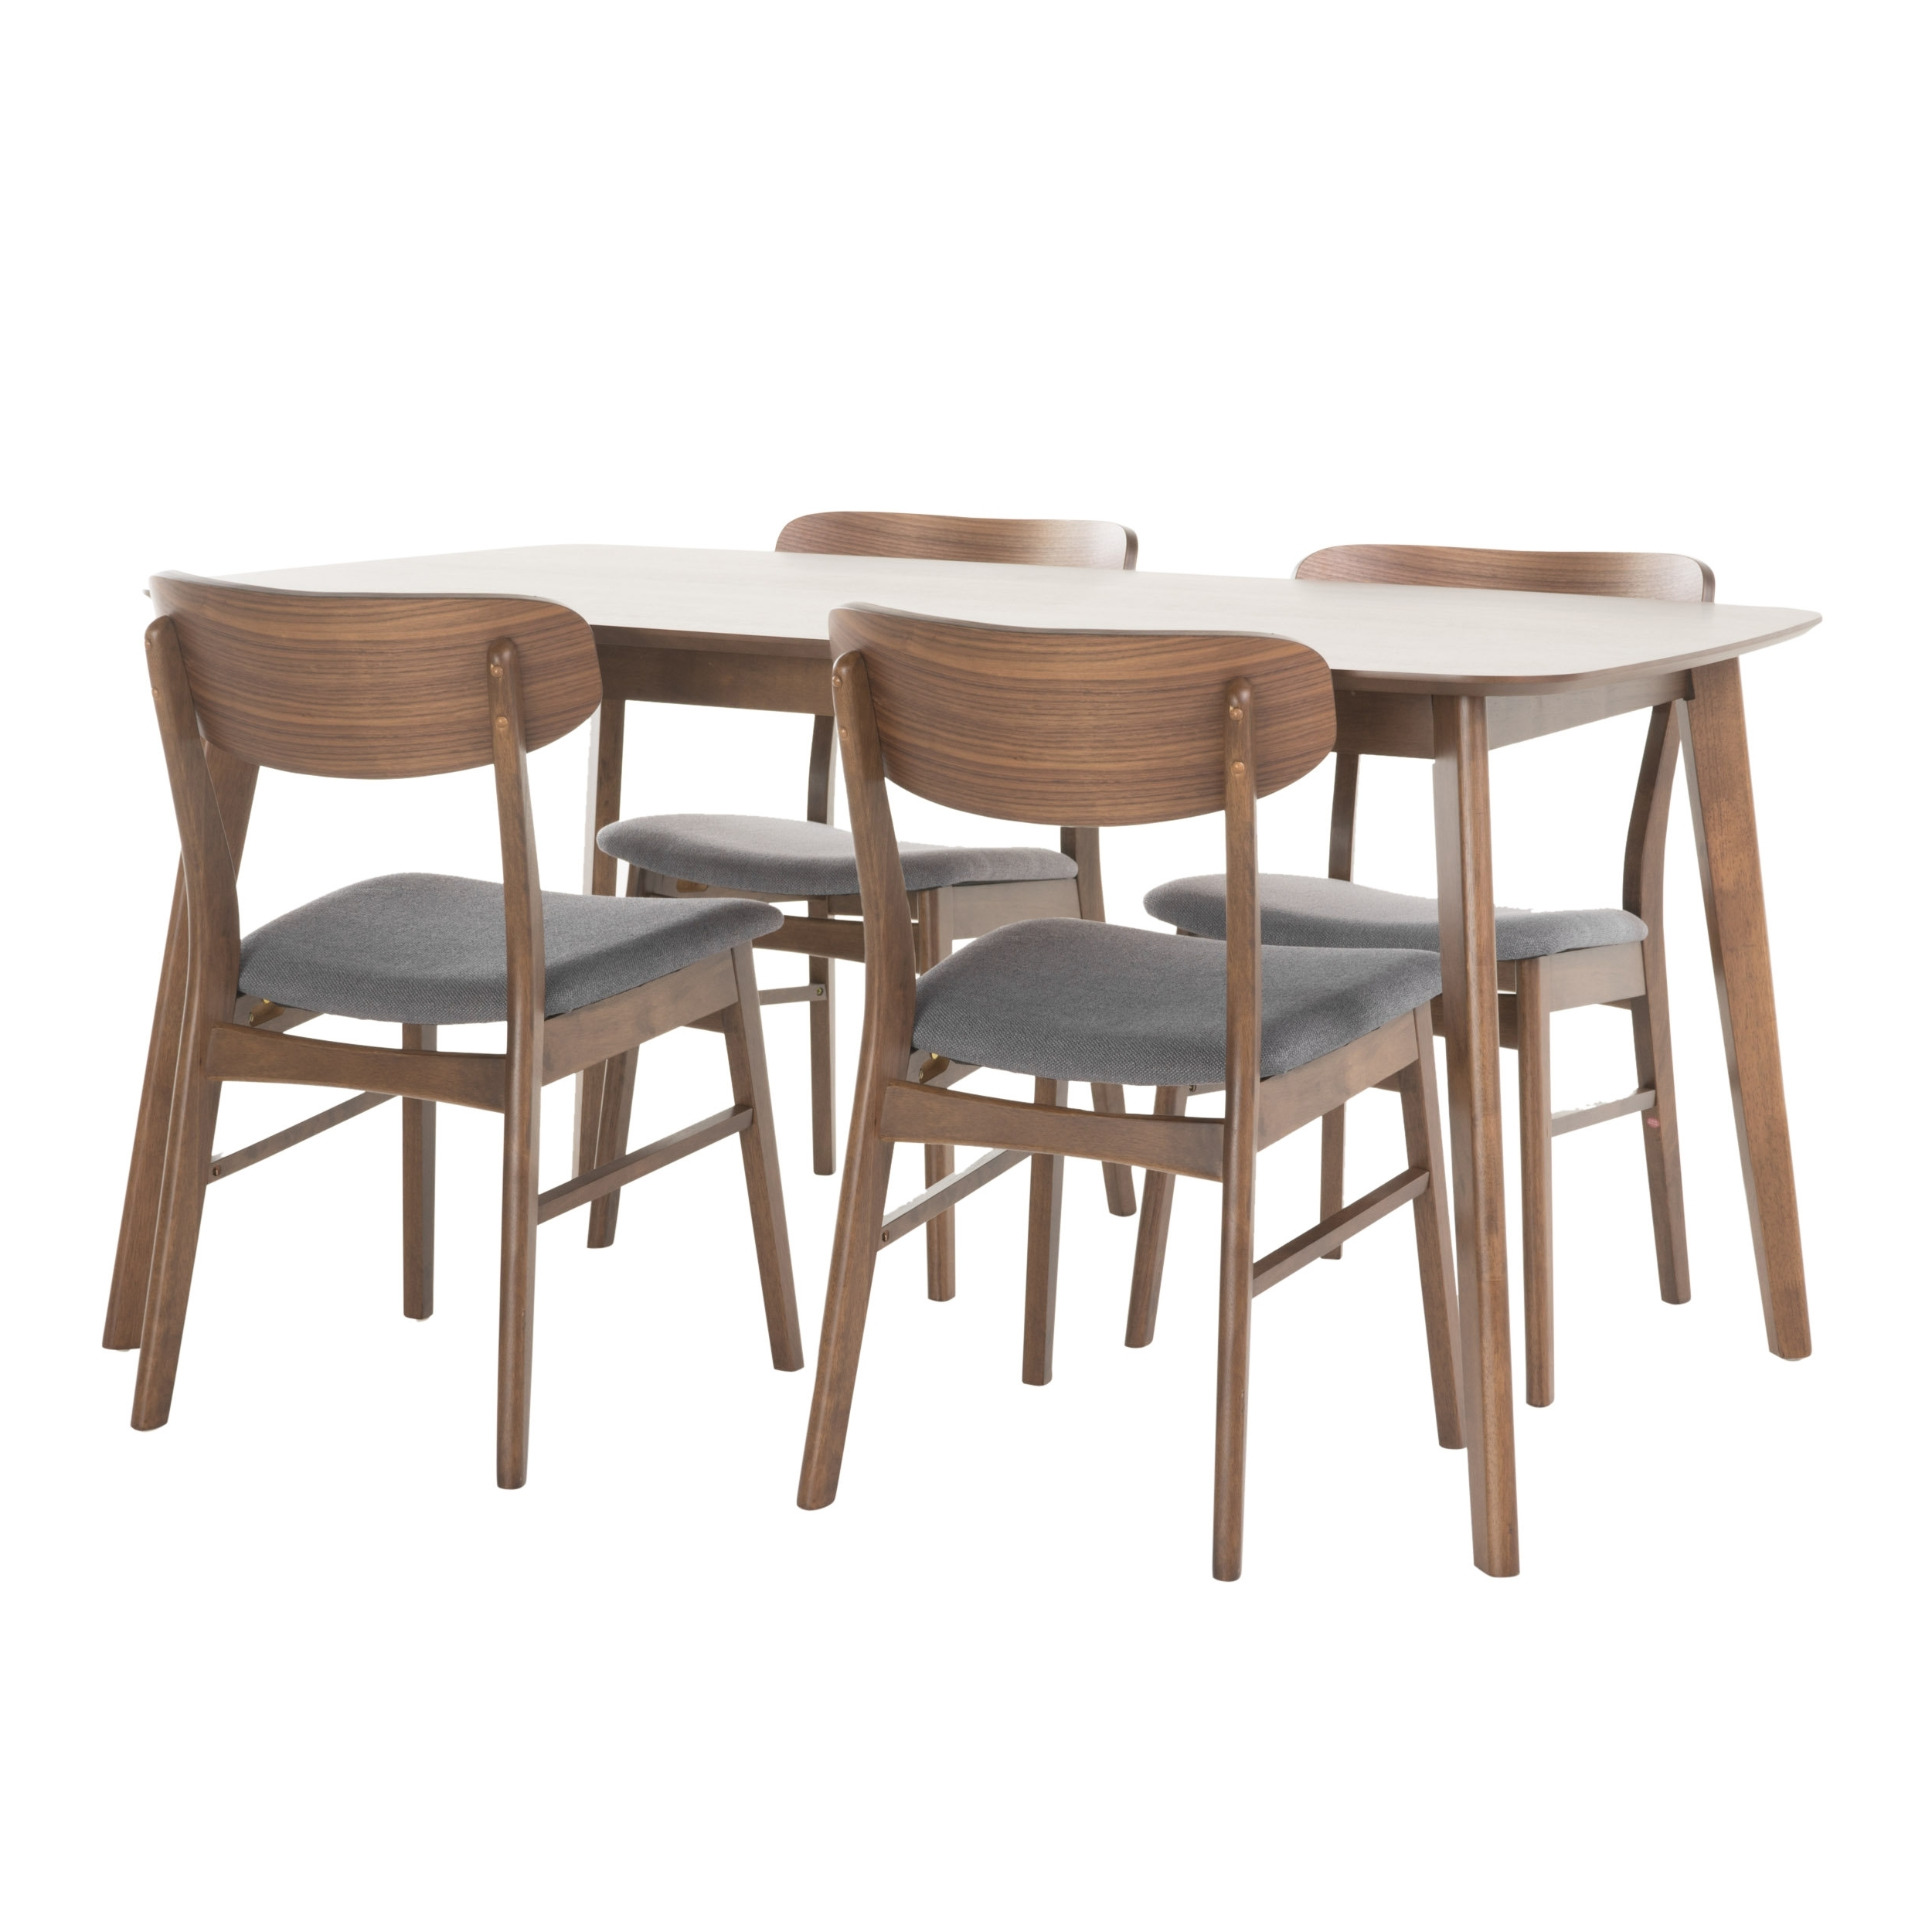 Wayfair Throughout Well Known Chandler 7 Piece Extension Dining Sets With Wood Side Chairs (View 17 of 25)